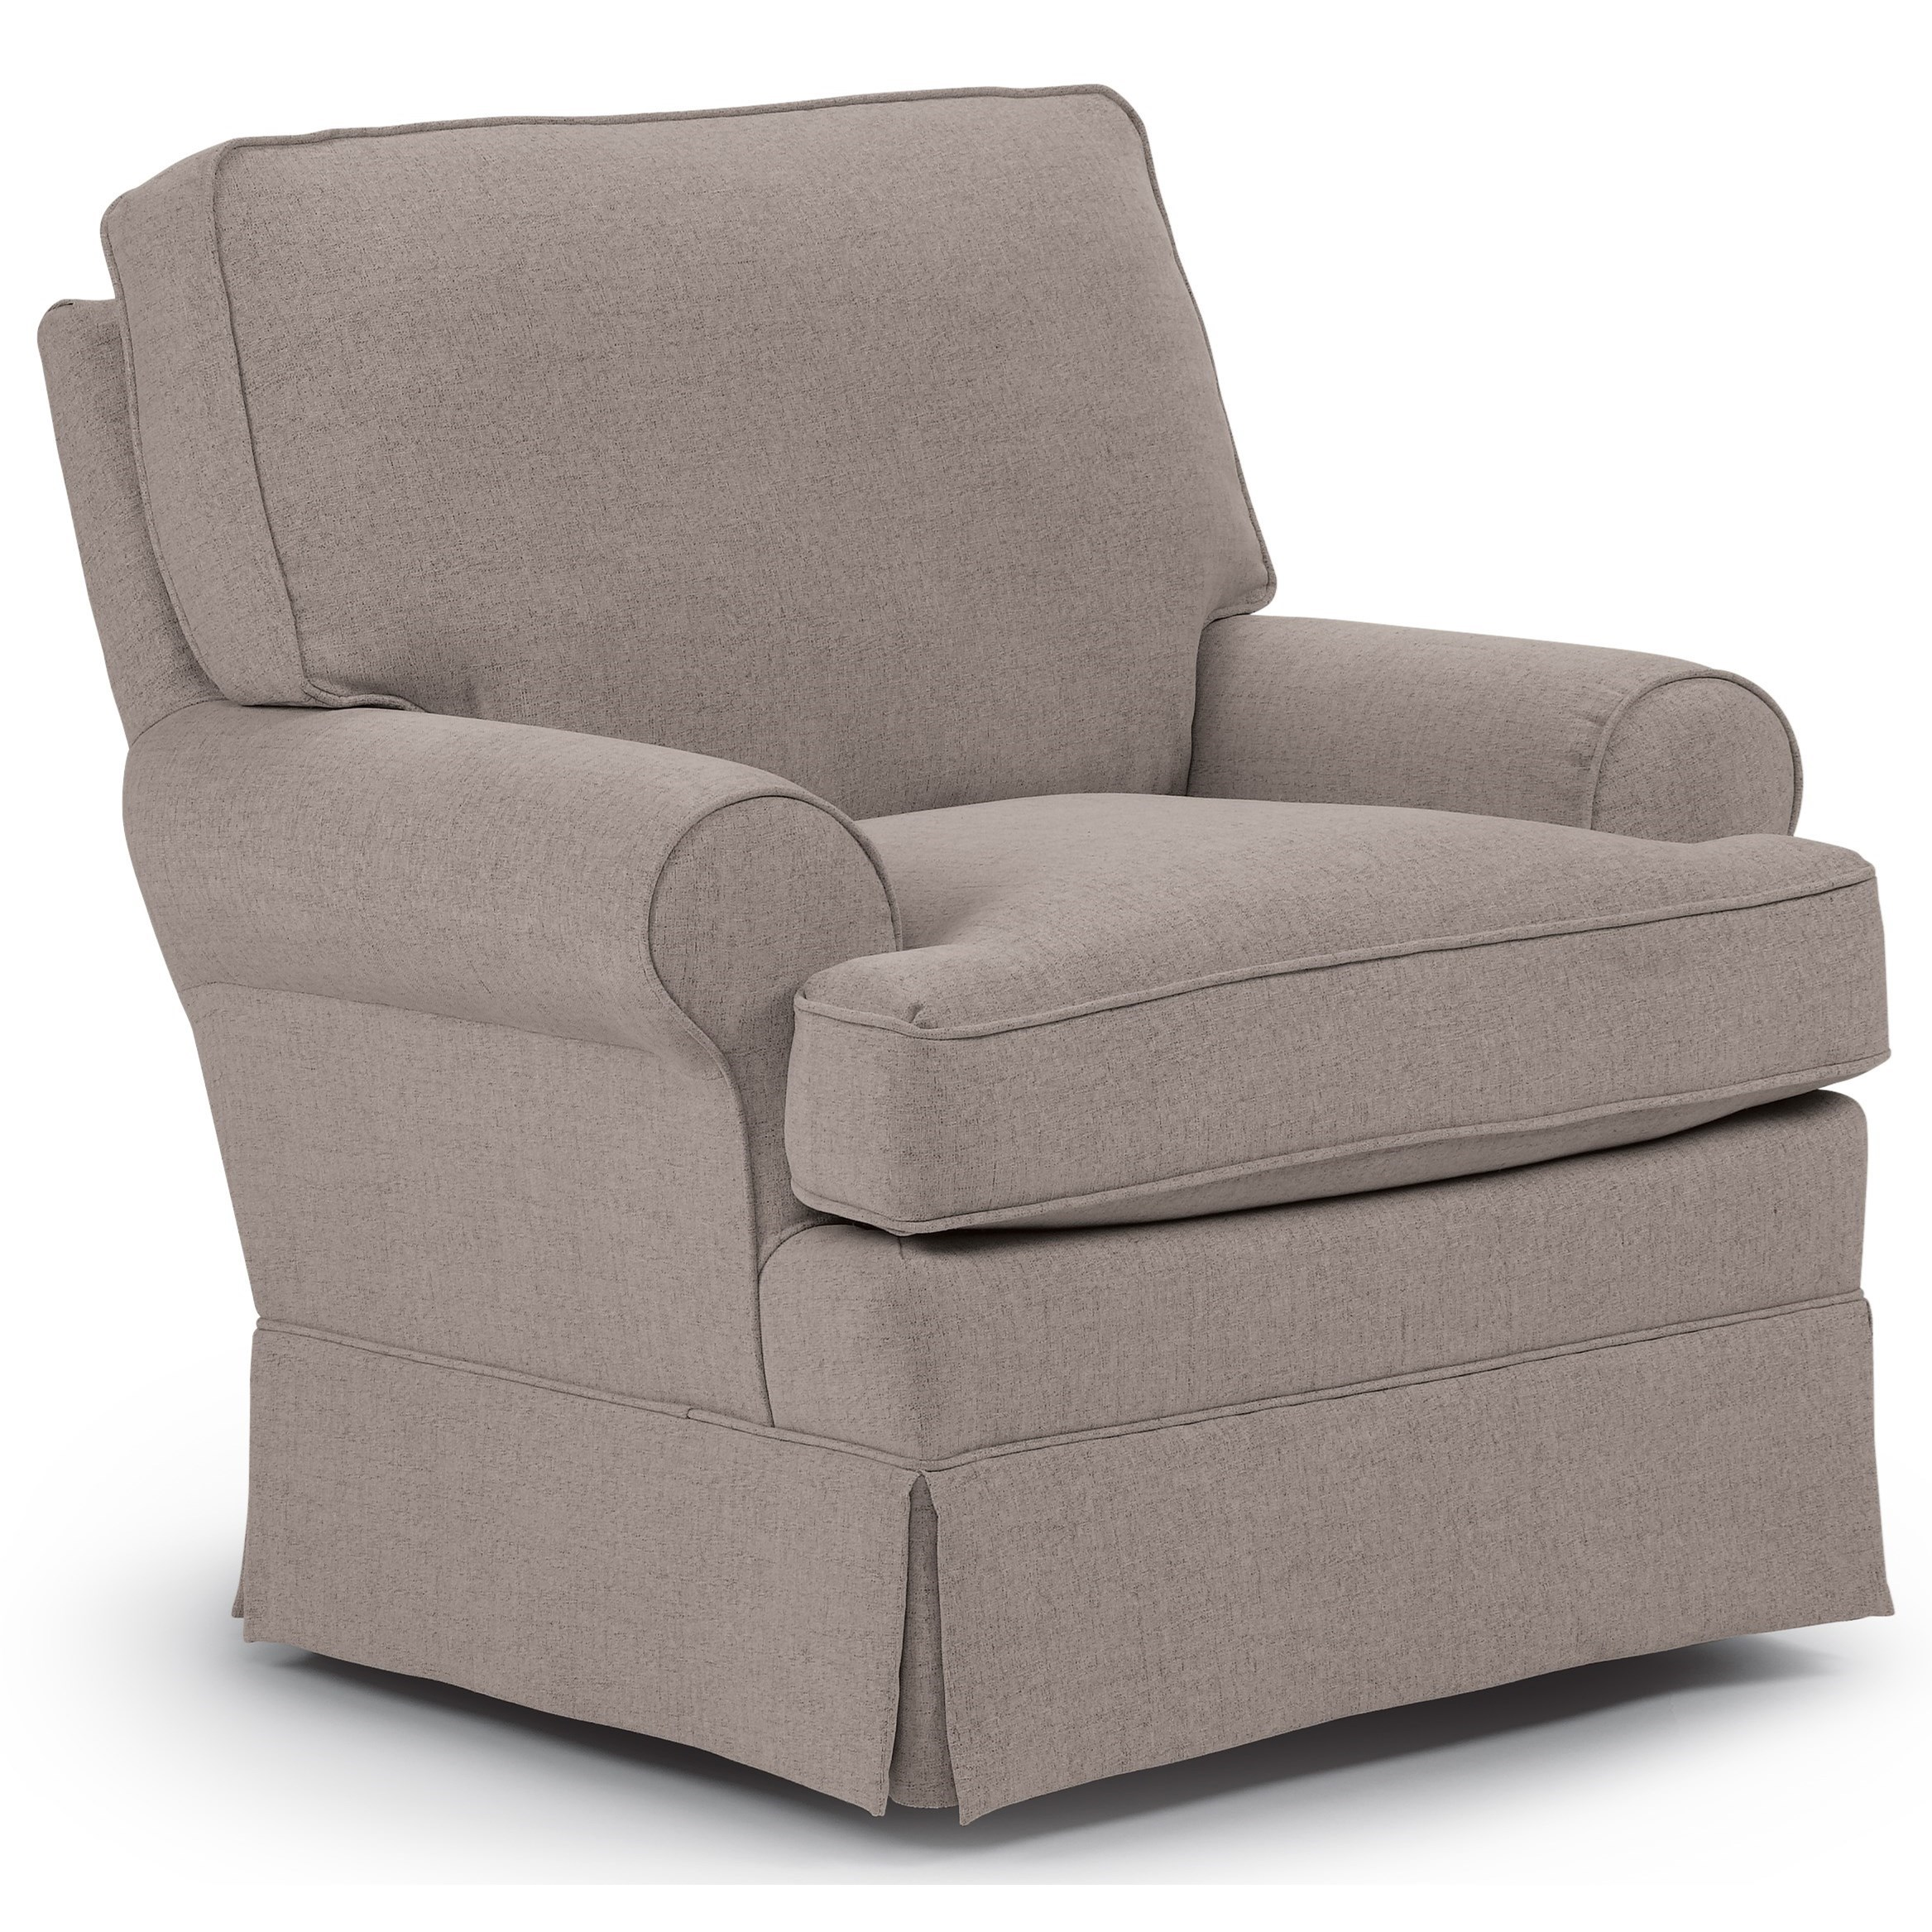 Best home furnishings swivel glide chairs quinn swivel - Best swivel chairs for living room ...